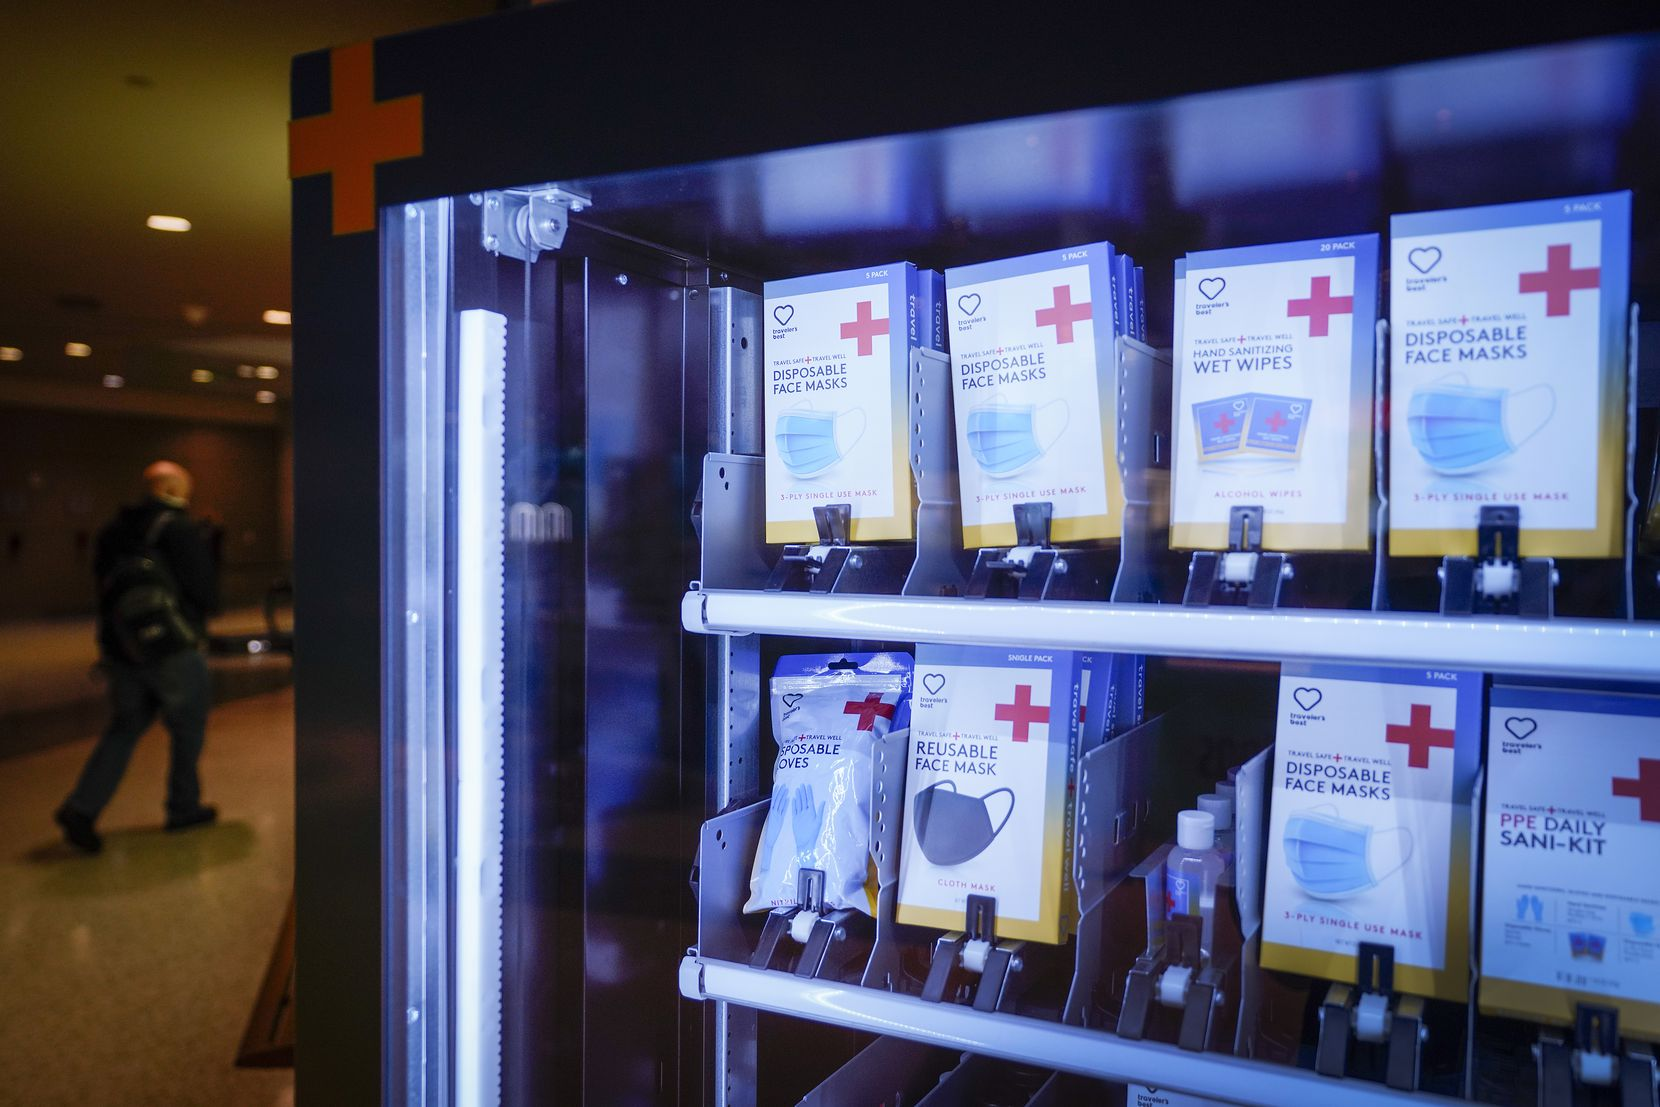 Masks, sanitizing wipes and other PPE are available for sale at a vending machine at Dallas Love Field on Thursday, Jan. 7, 2021, in Dallas. (Smiley N. Pool/The Dallas Morning News)